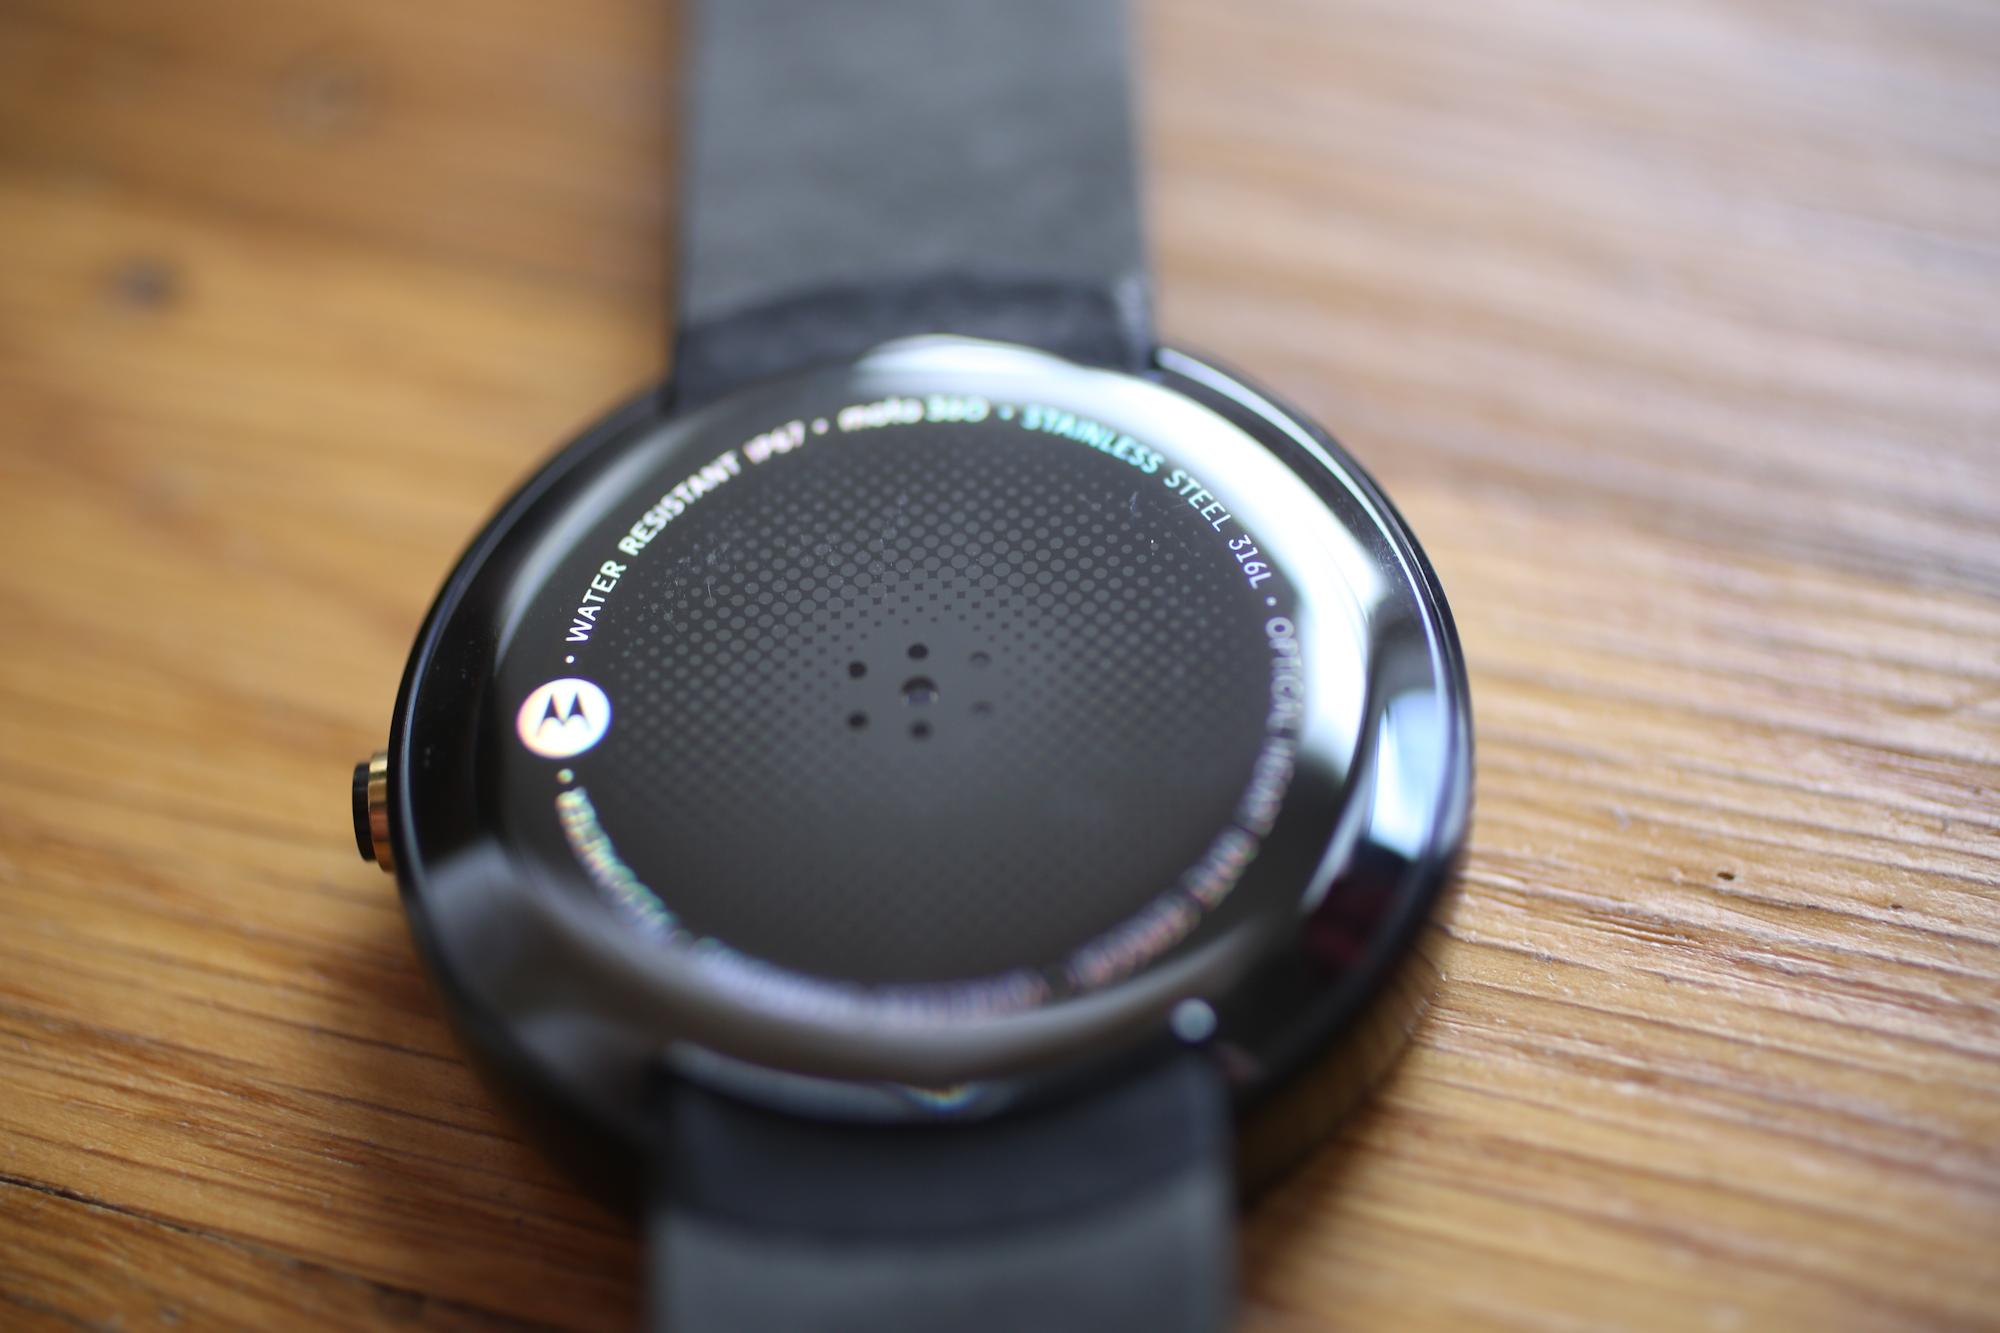 Moto 360 Review: A Beautifully Flawed Watch